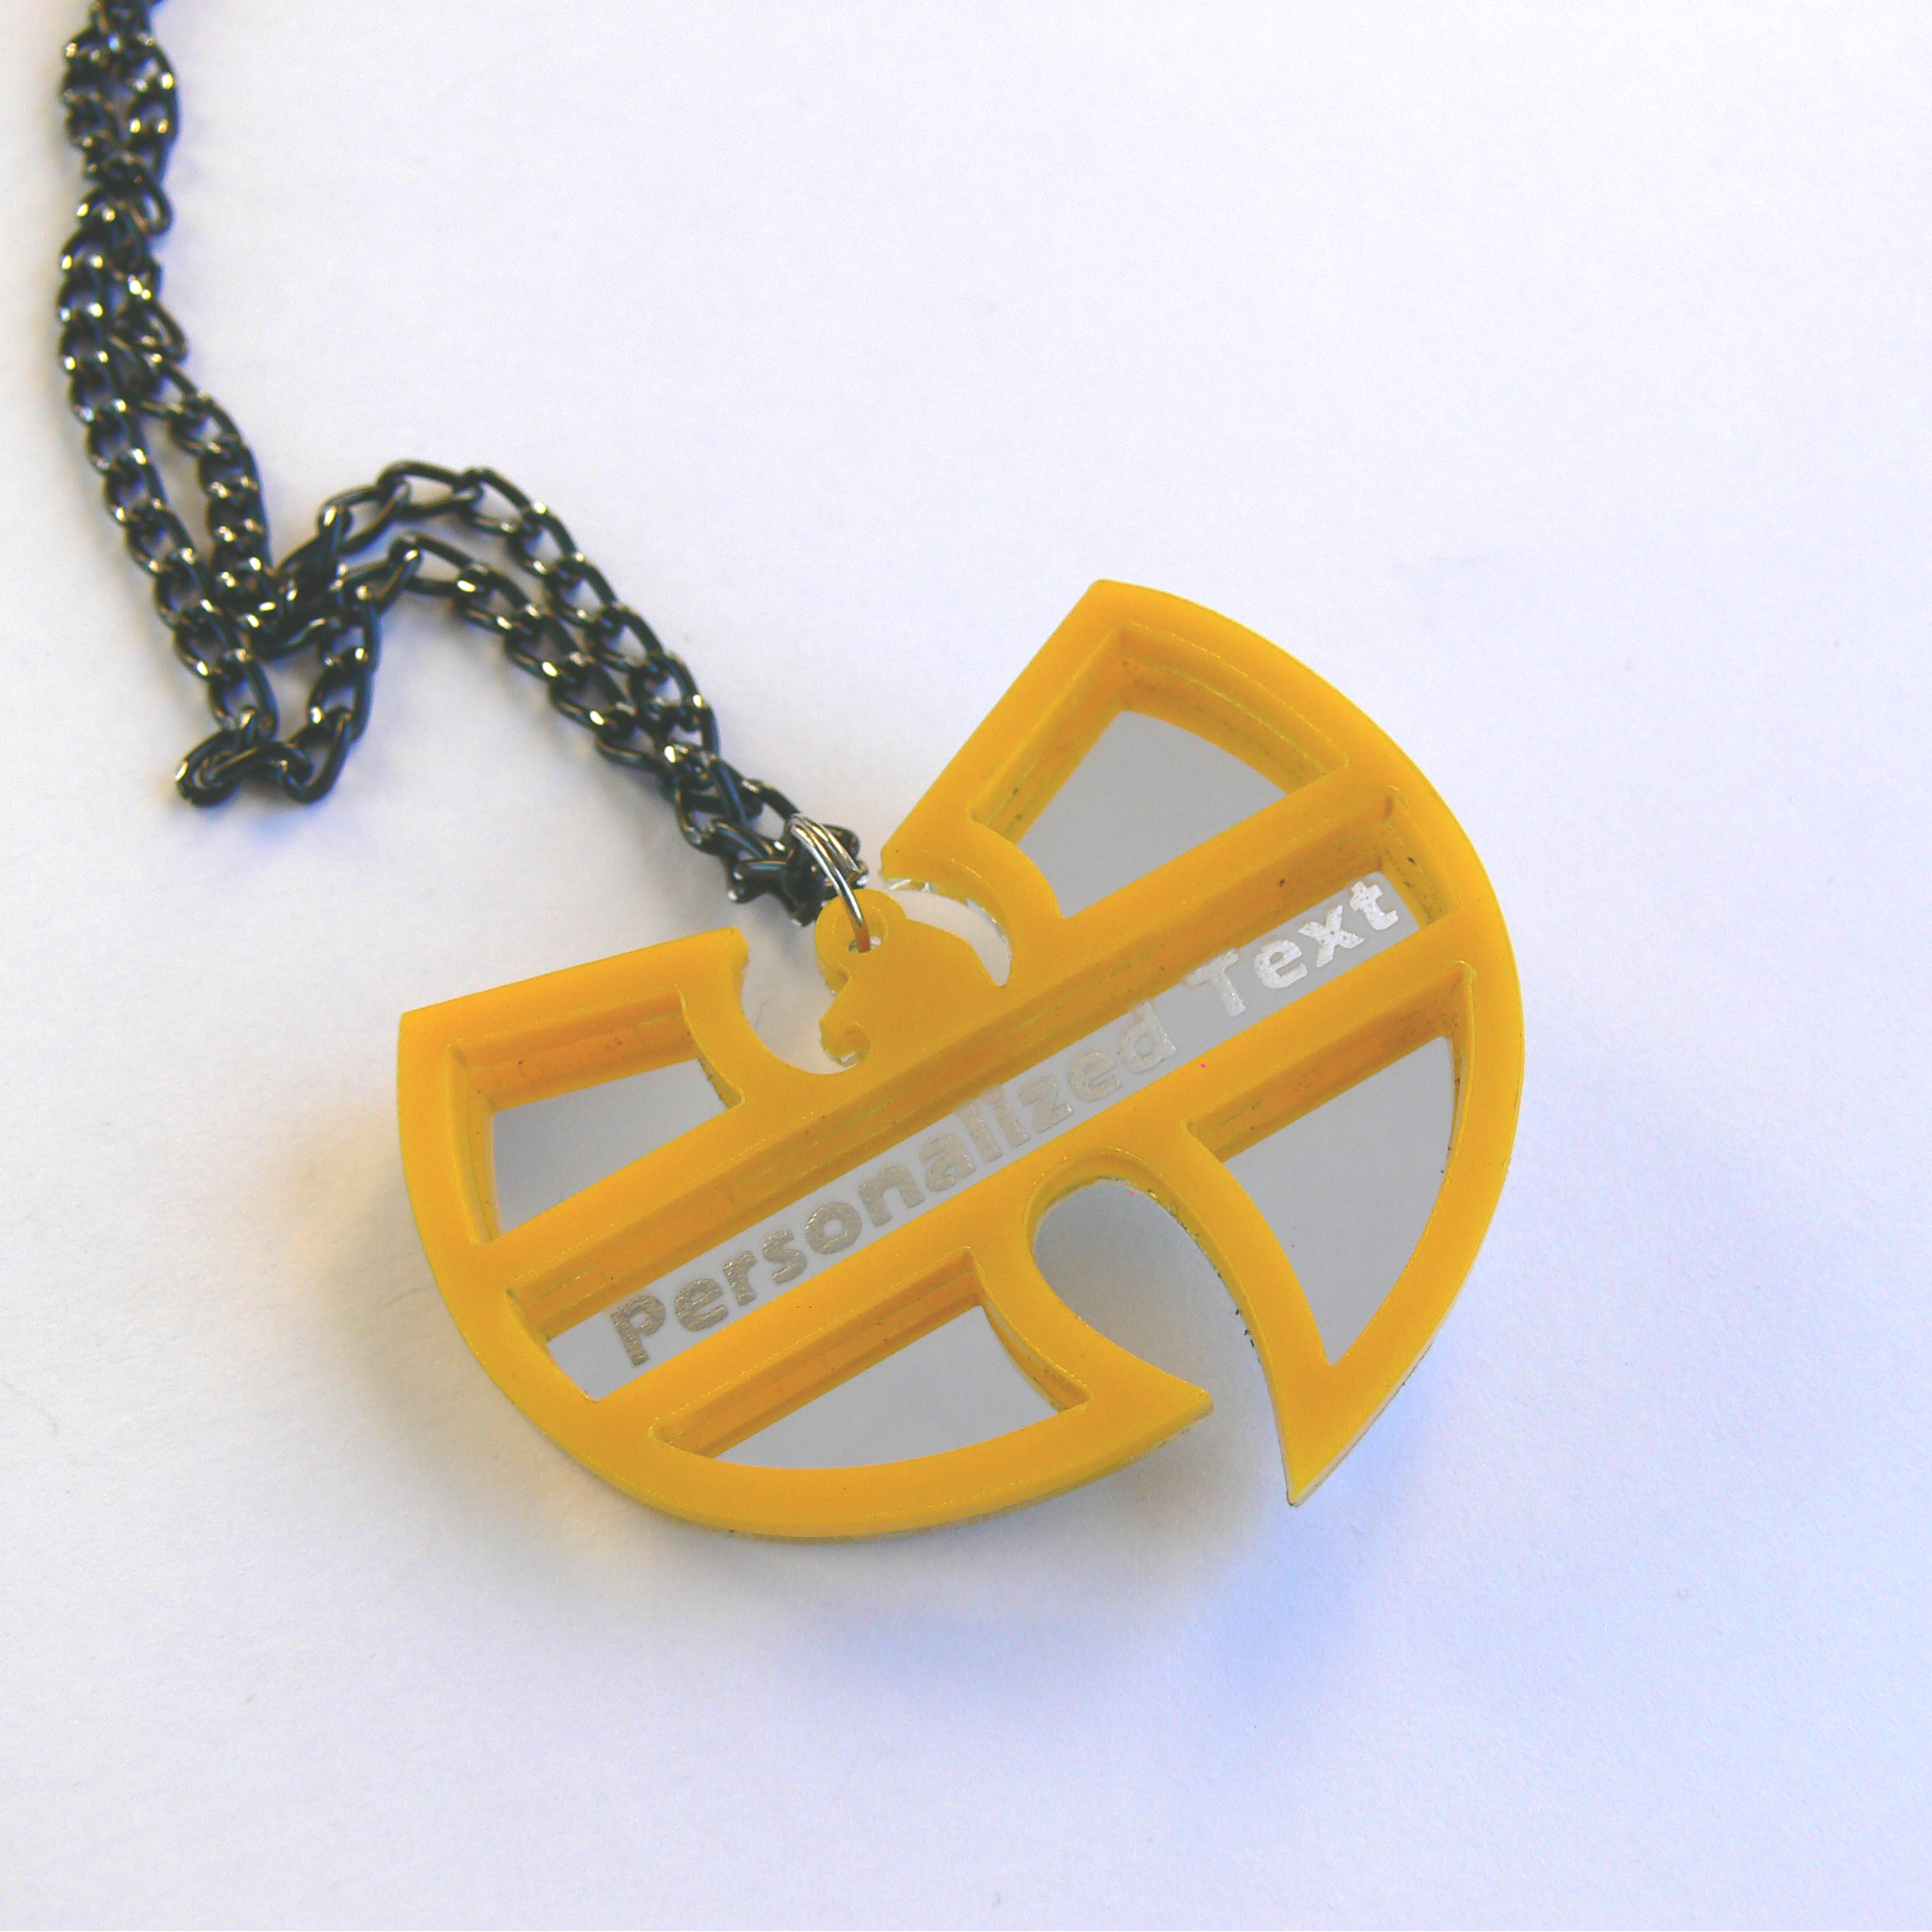 Wu tang clan personalized text necklace laser cut mirror and yellow wu tang clan personalized text necklace laser cut mirror and yellow acrylic aloadofball Images